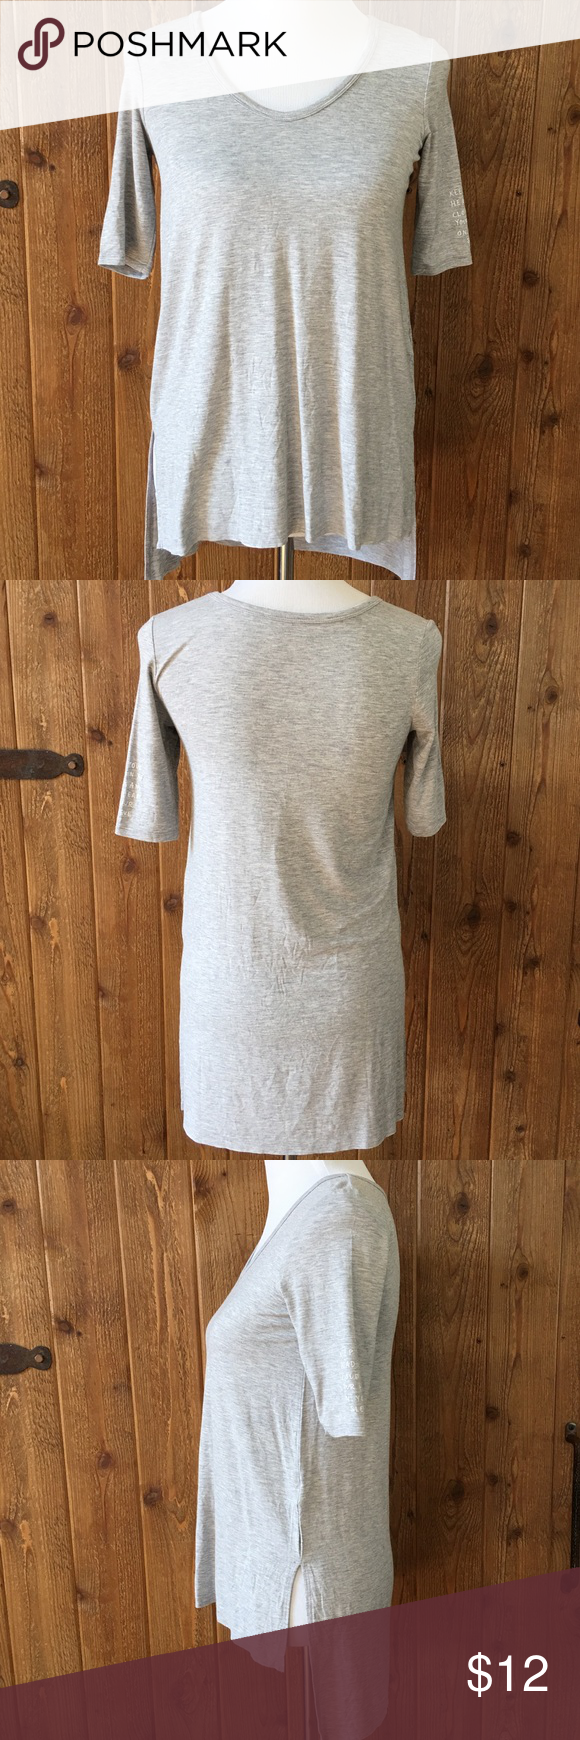 Soft & Sexy Gray Hi Low Tee! Never worn! Soft & Sexy! American Eagle Outfitters Tops